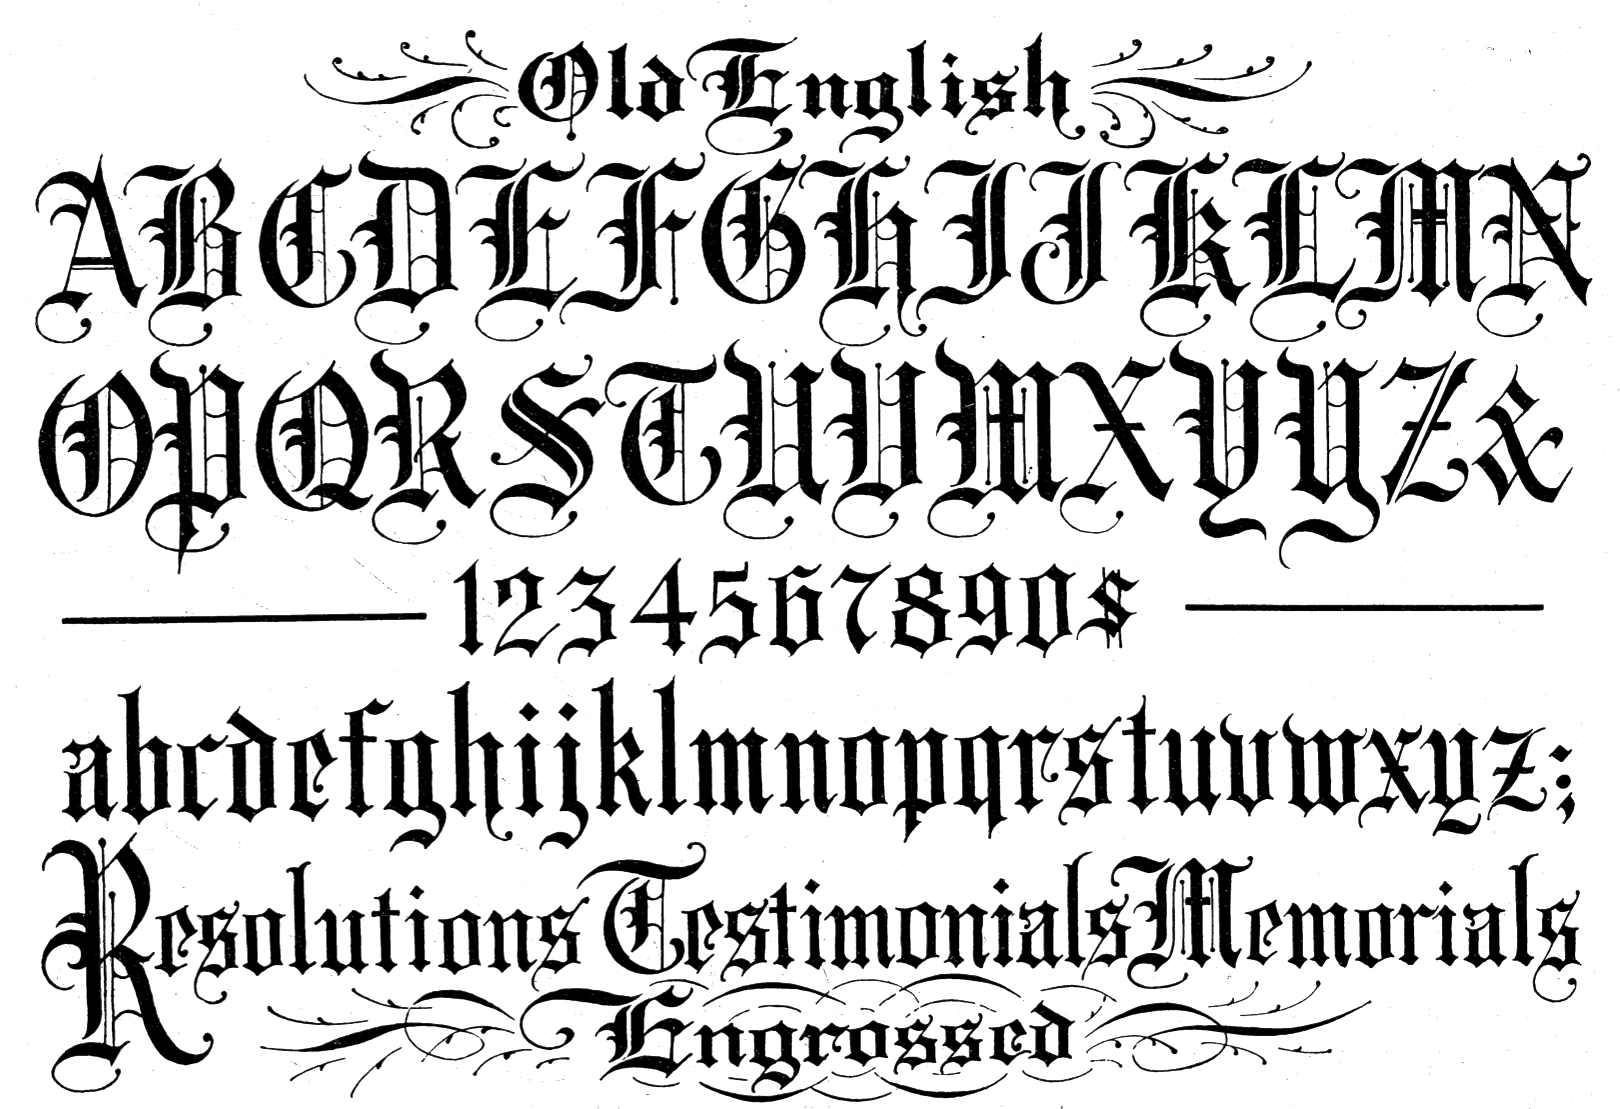 Wallpaper download english - Old English Font Hd Wallpapers Download Free Old English Font Tumblr Pinterest Hd Wallpapers